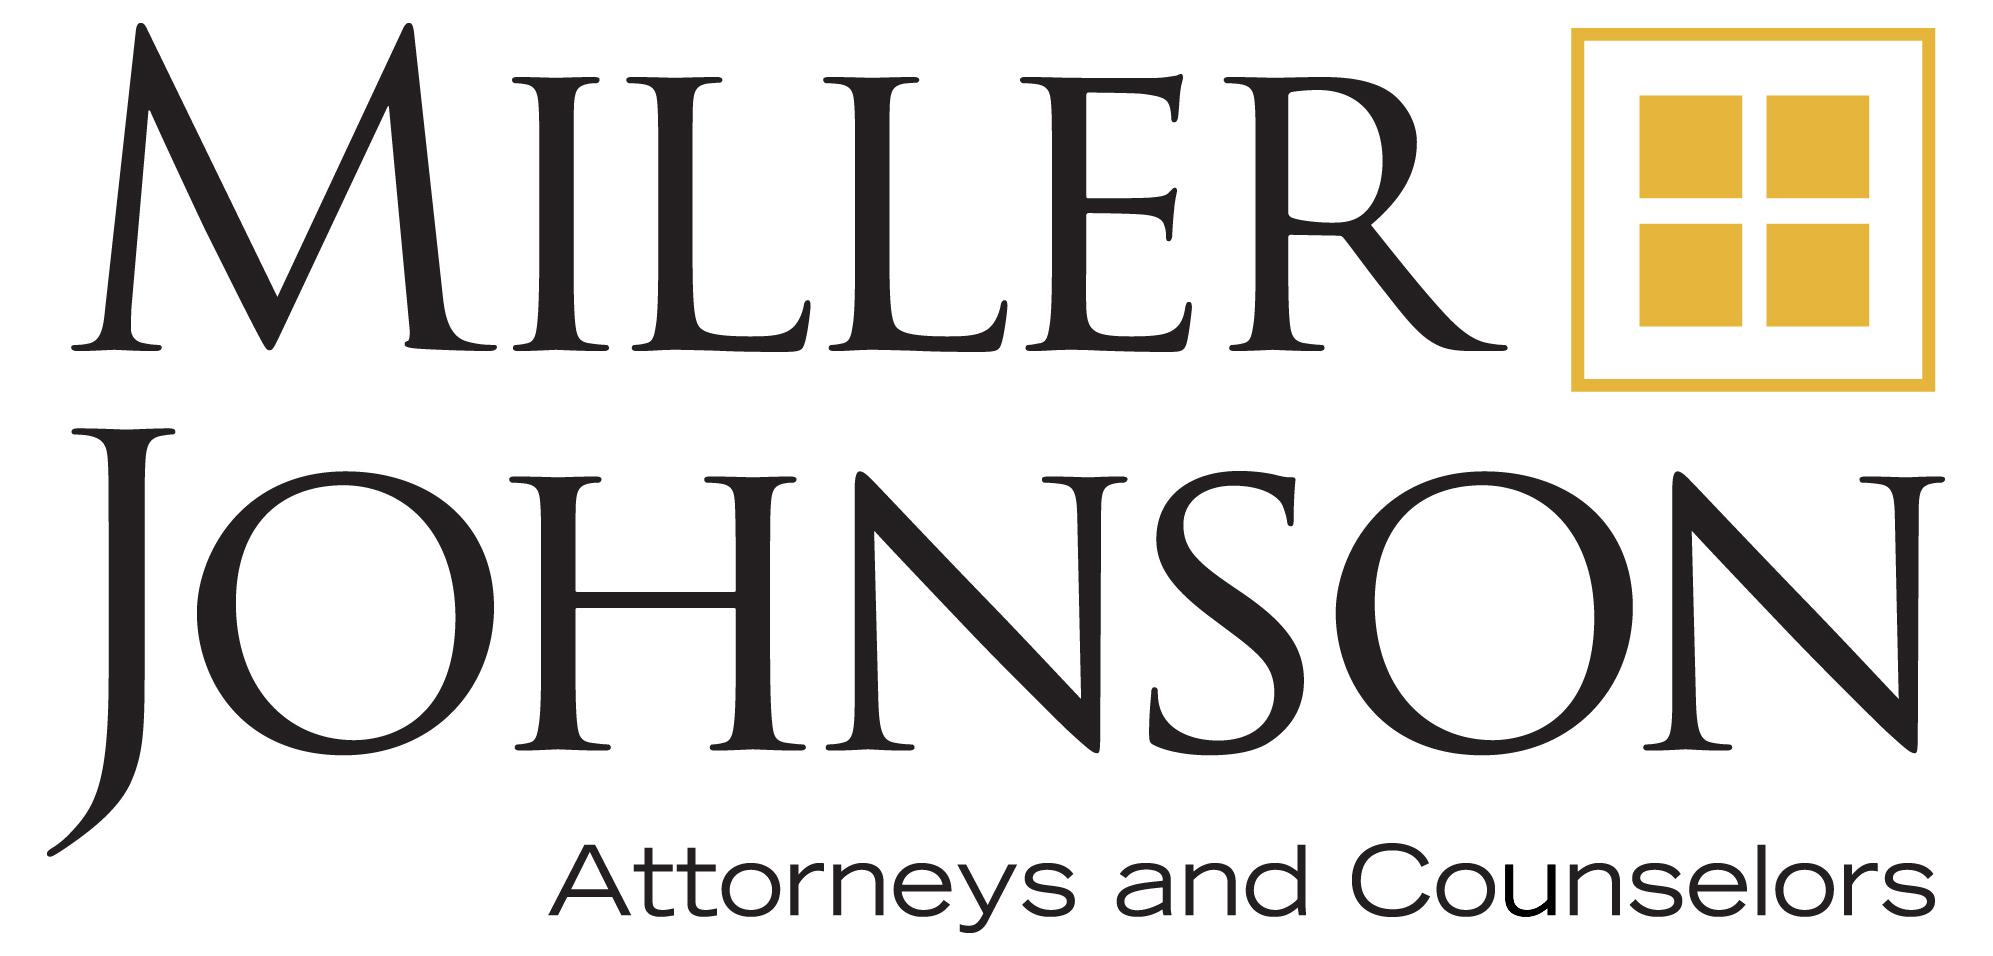 Miller Johnson Logo color 7407-jpg (2).jpg